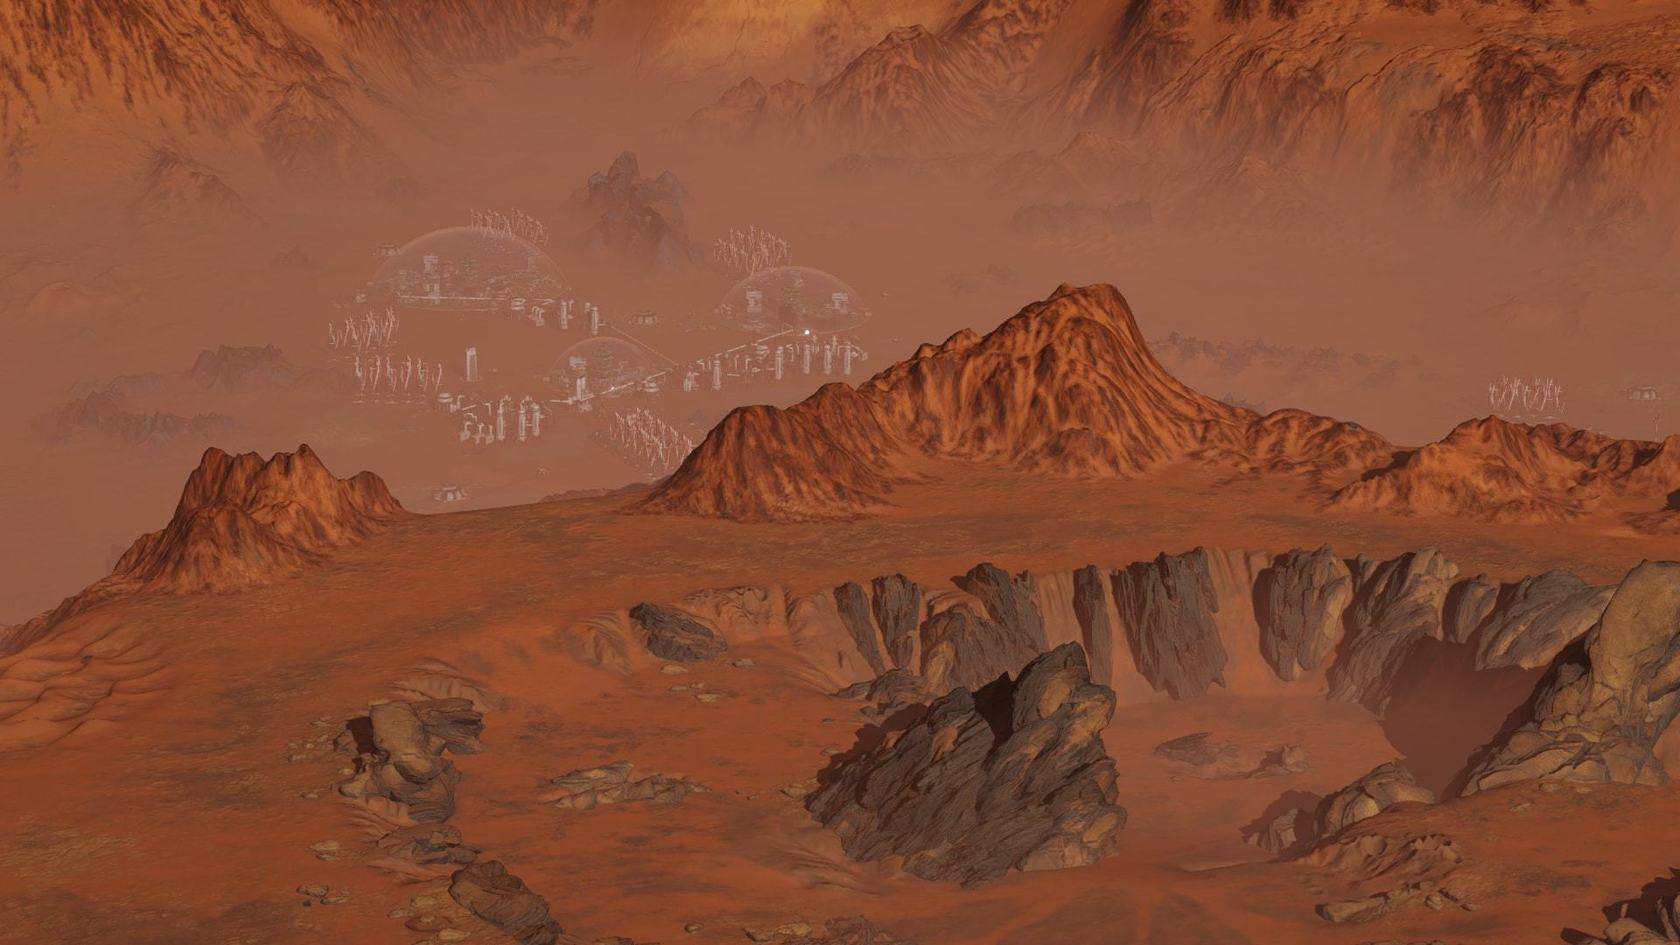 Surviving mars: first colony edition download for mac catalina